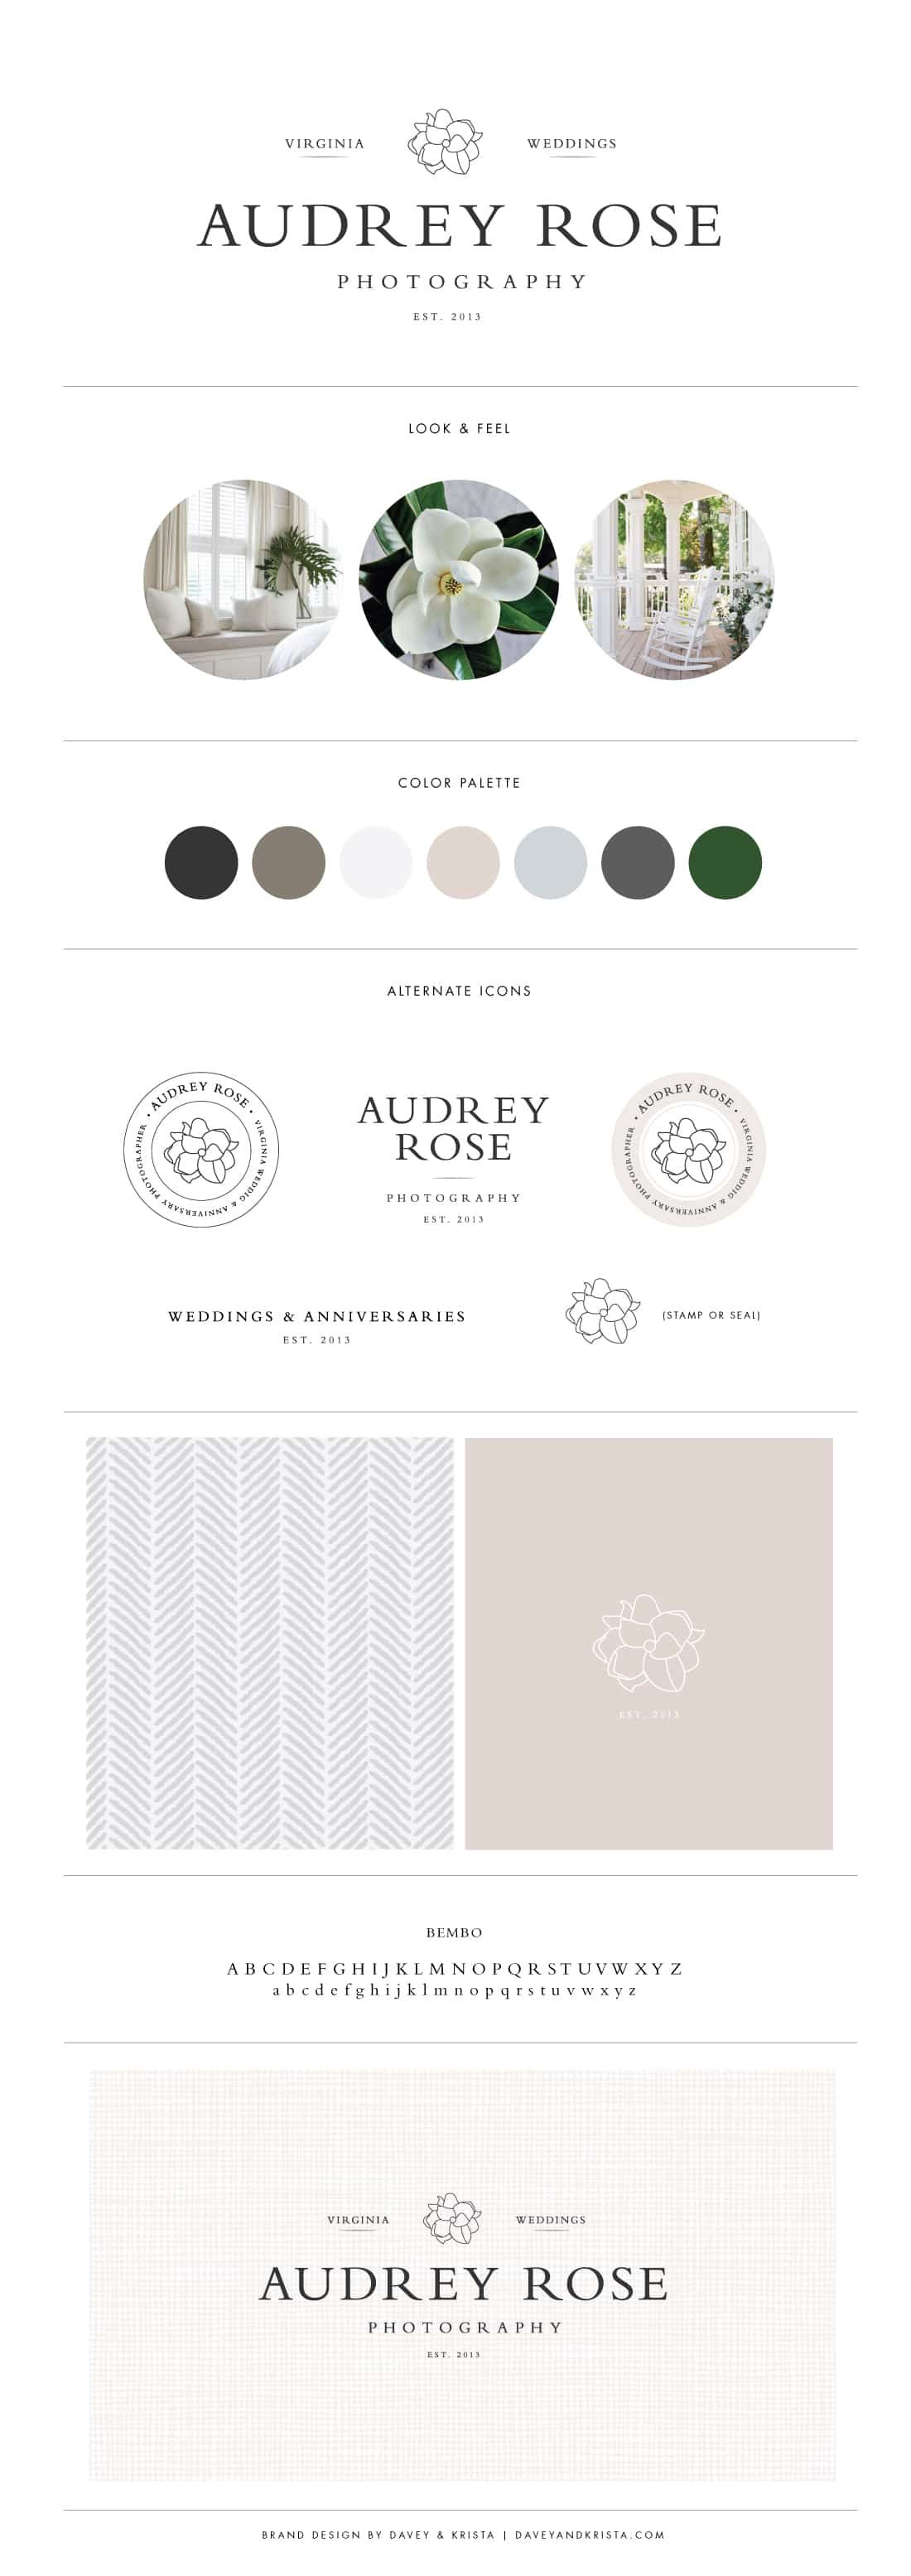 Southern inspired brand design for wedding photographer Audrey Rose | Davey & Krista